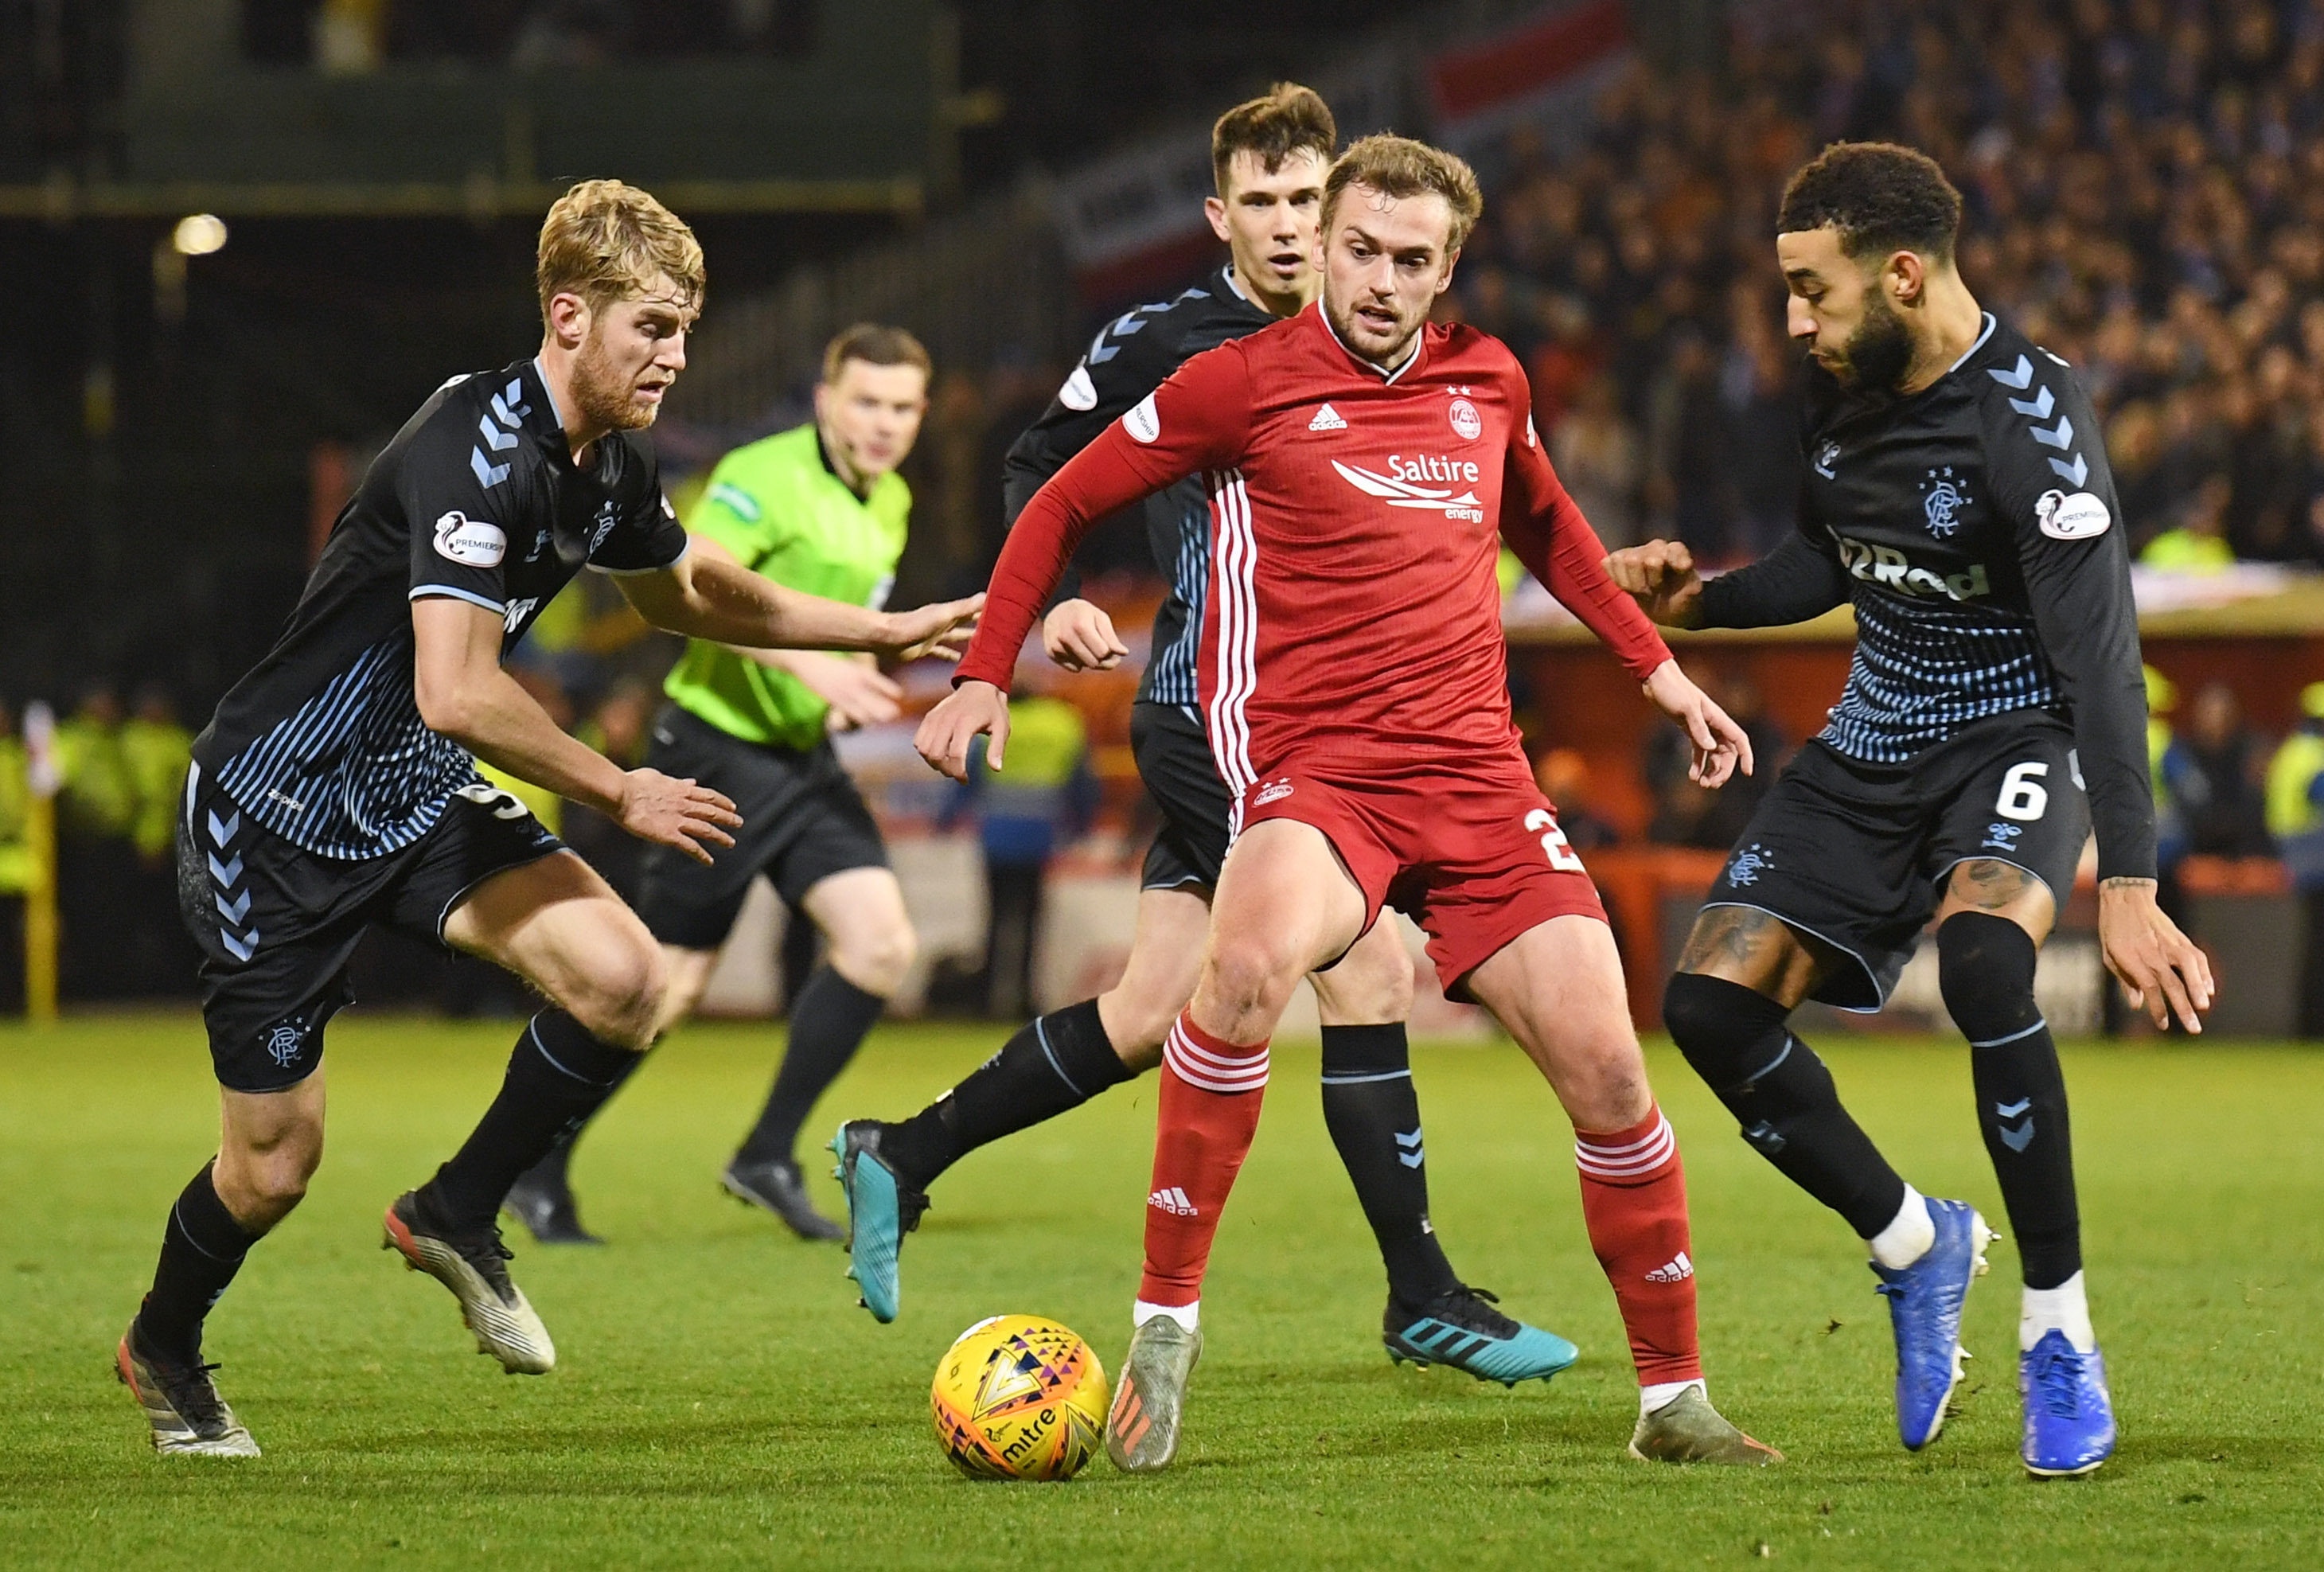 Aberdeen's James Wilson, centre, holds off Rangers' Filip Helander and Connor Goldson, right.